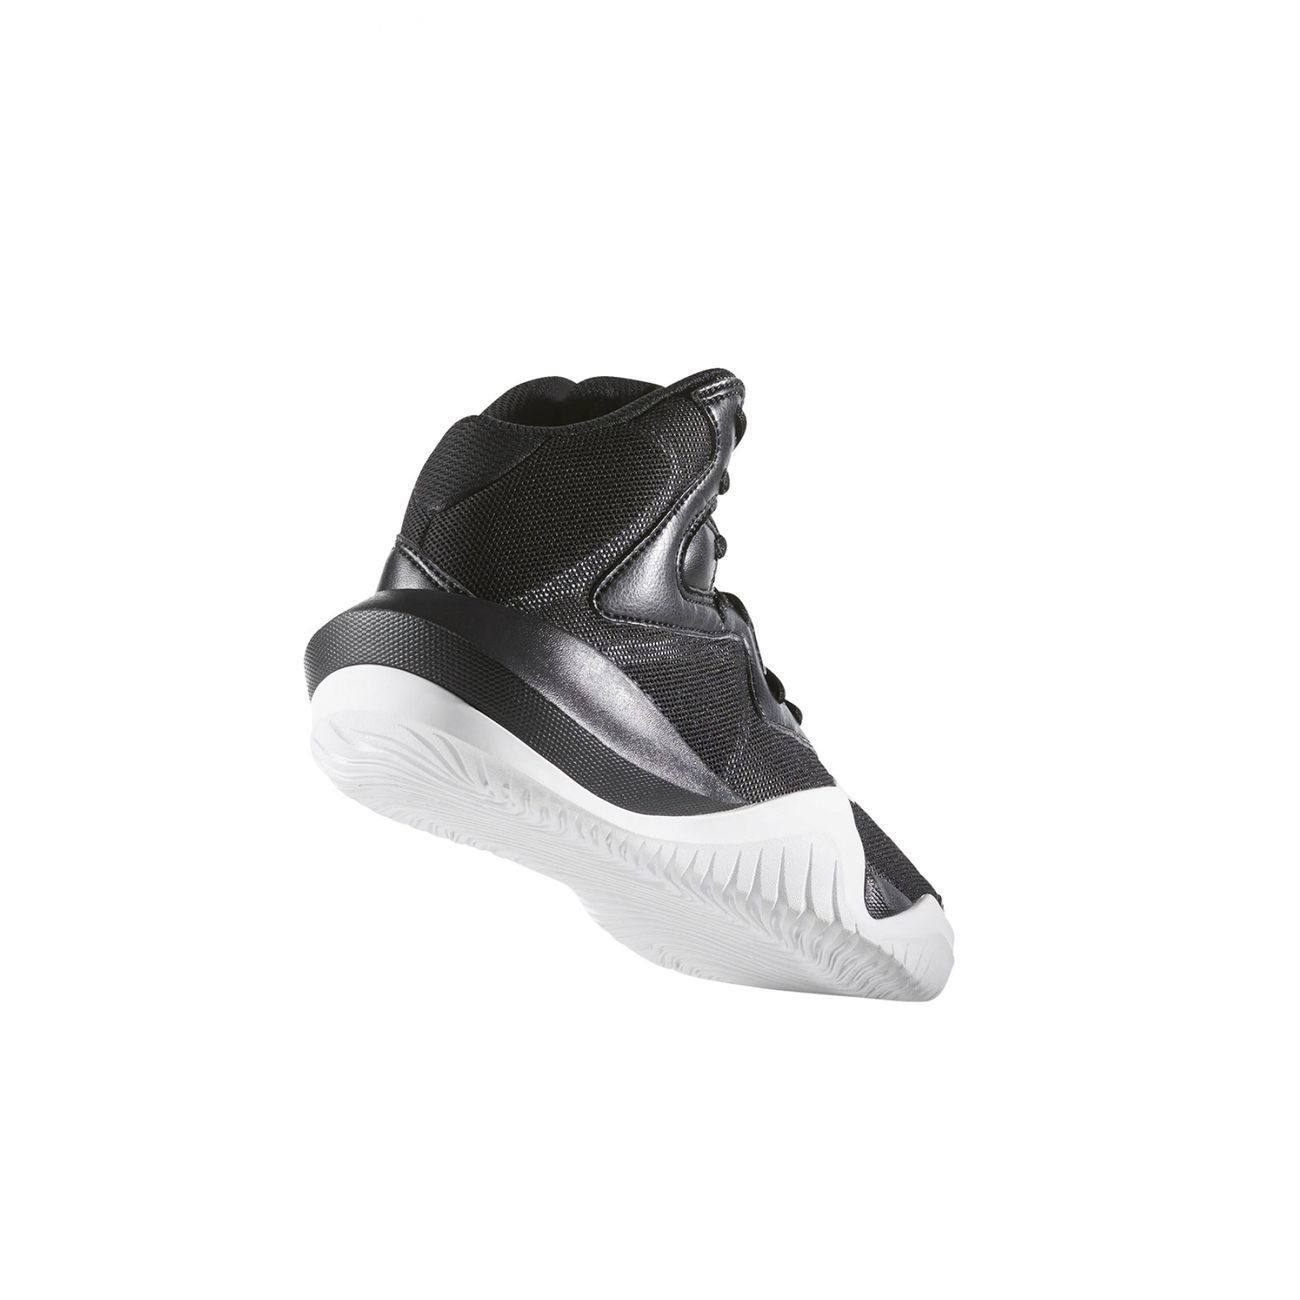 Chaussure de Basket Adidas Performance Crazy Team K – achat